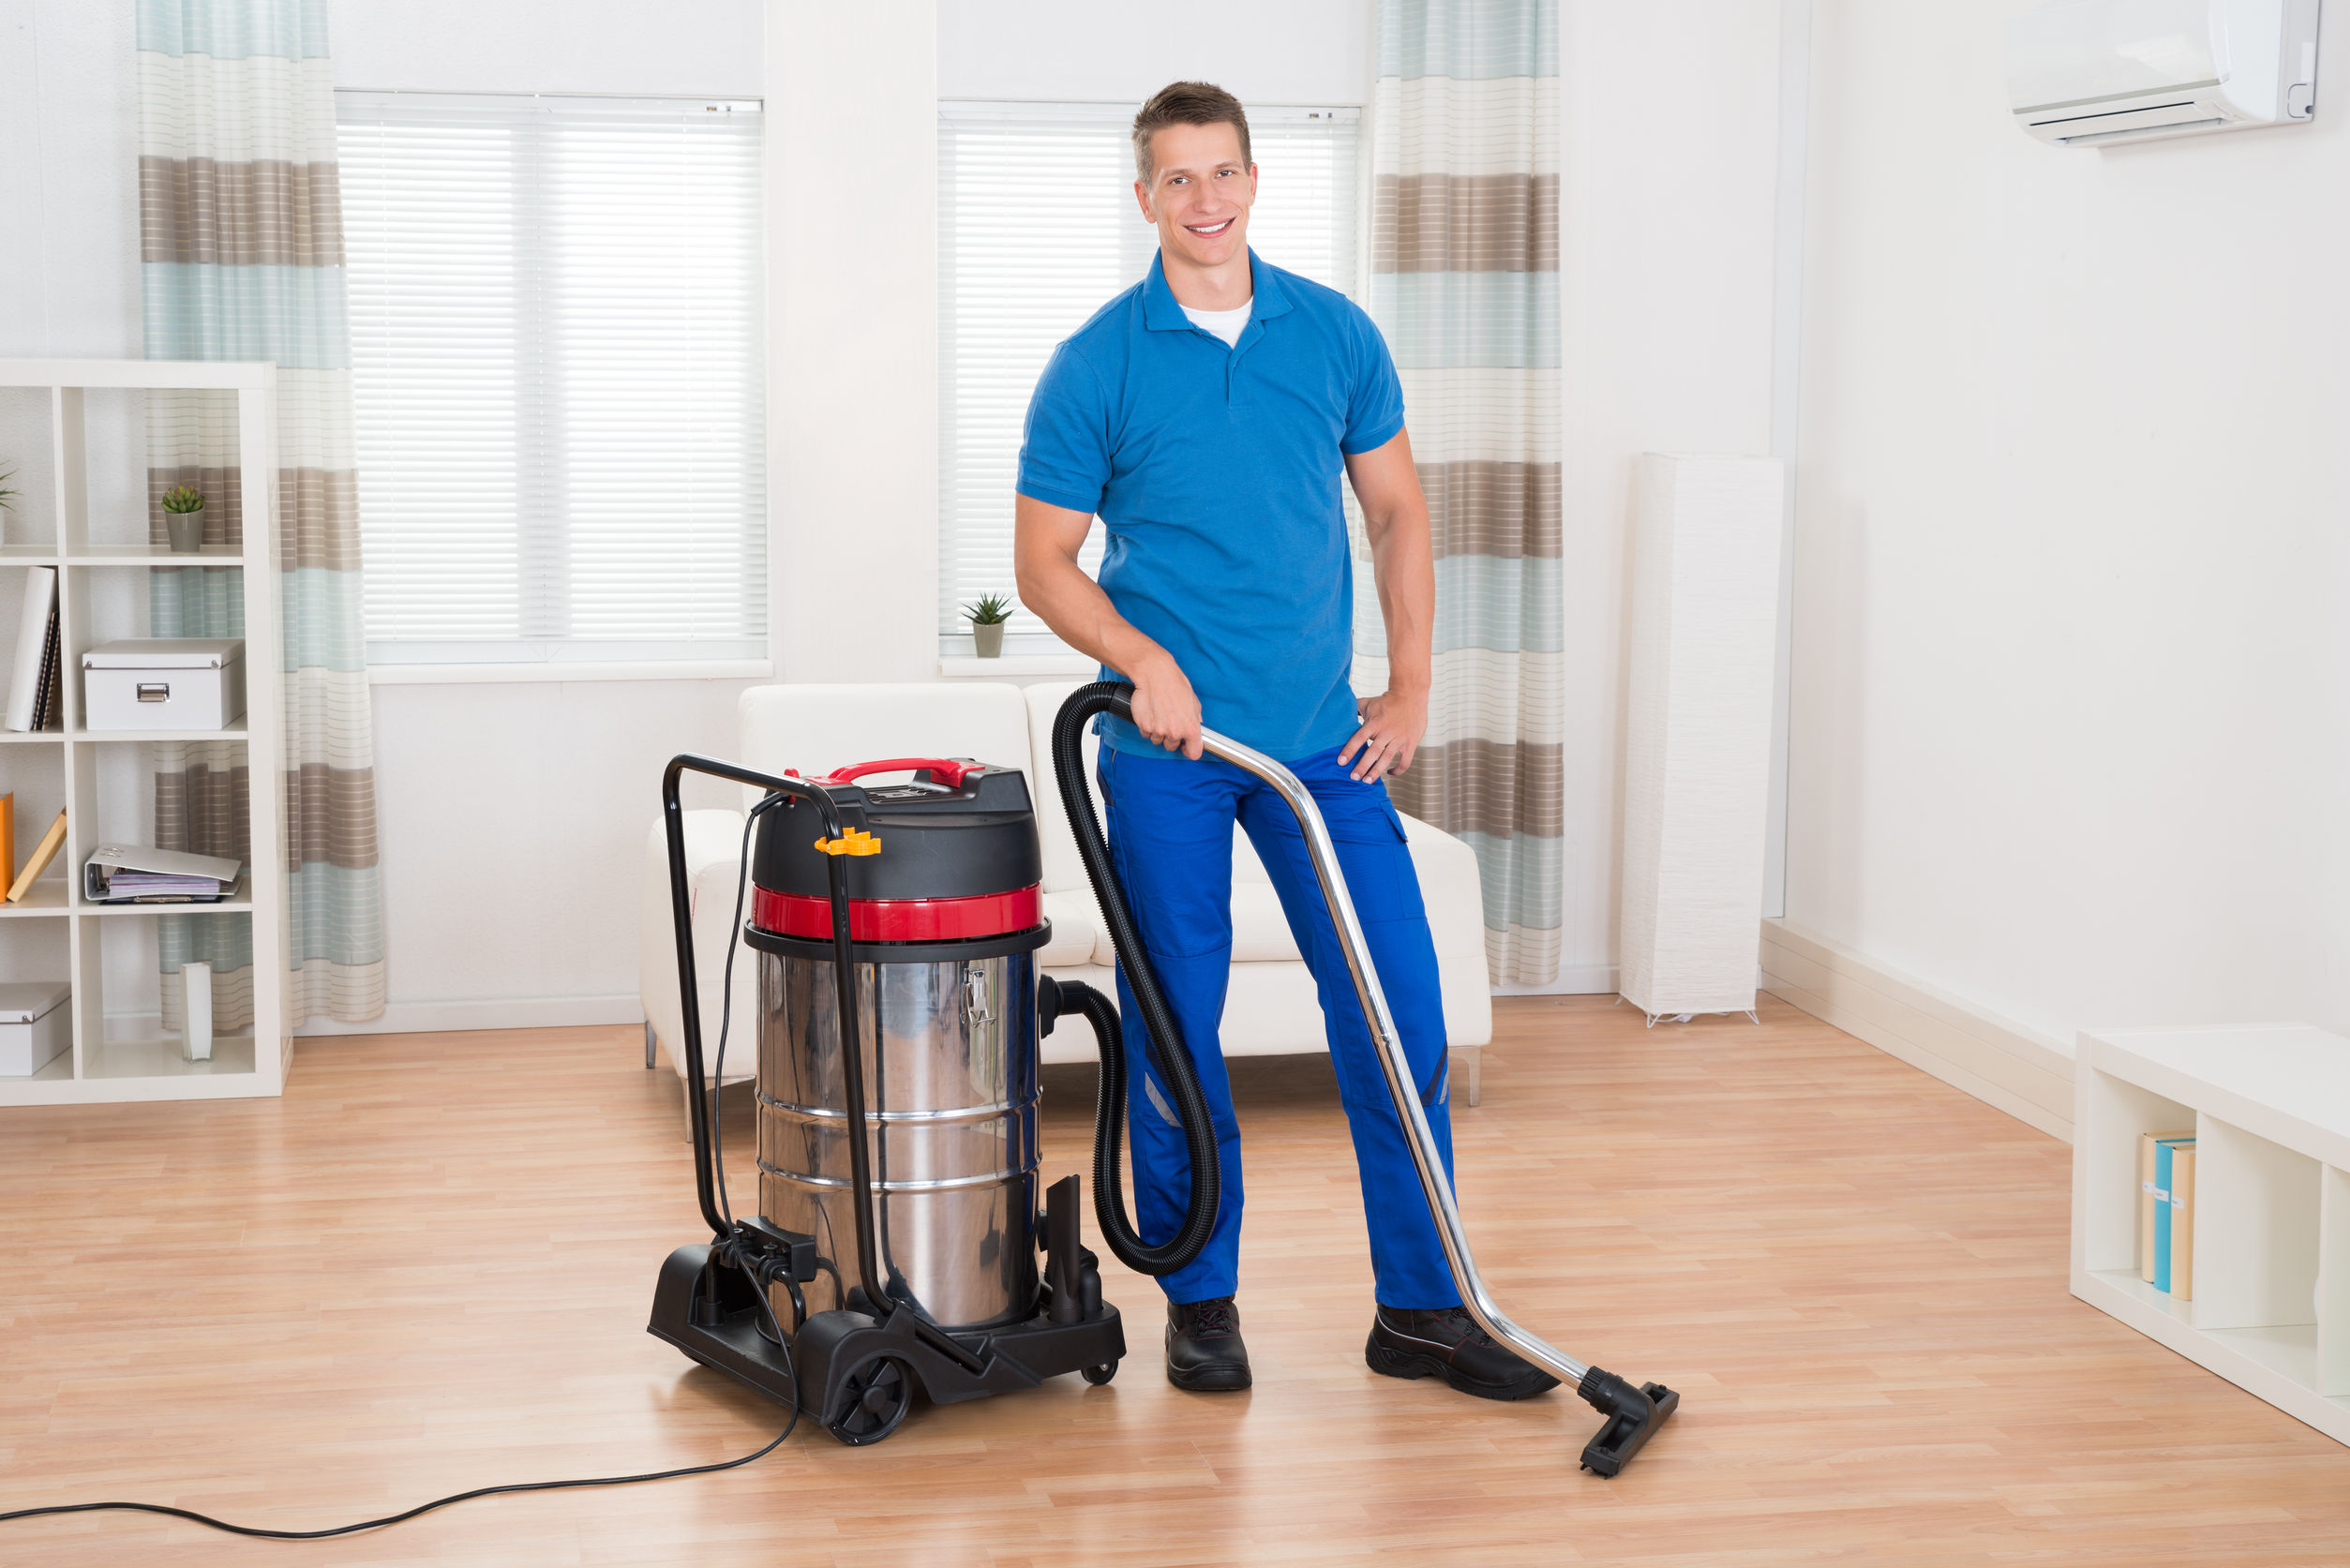 44713918 Happy Male Janitor Vacuuming Wooden Floor In